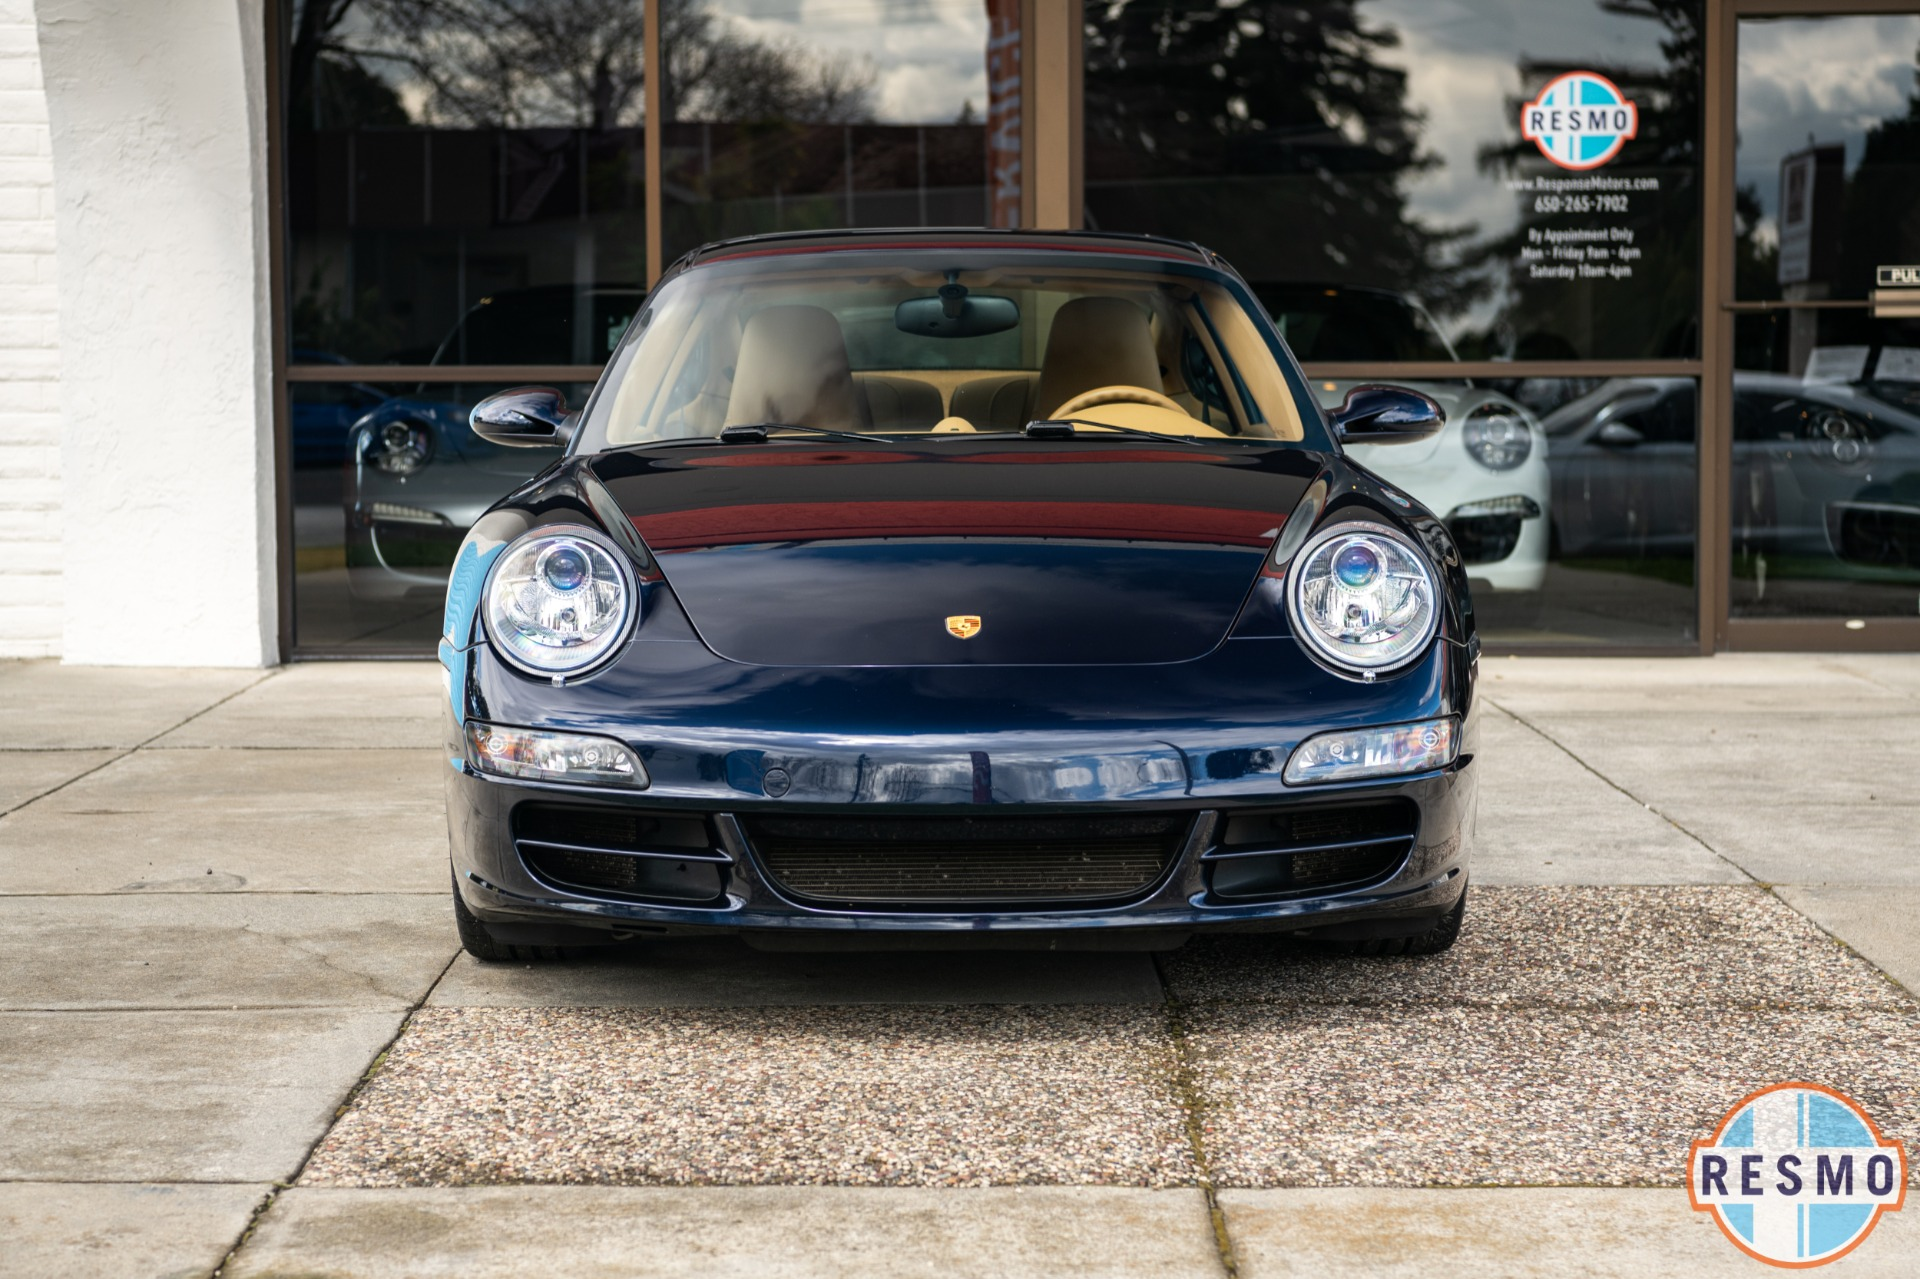 Used 2008 Porsche 911 Carrera 4S Used 2008 Porsche 911 Carrera 4S for sale $41,999 at Response Motors in Mountain View CA 2